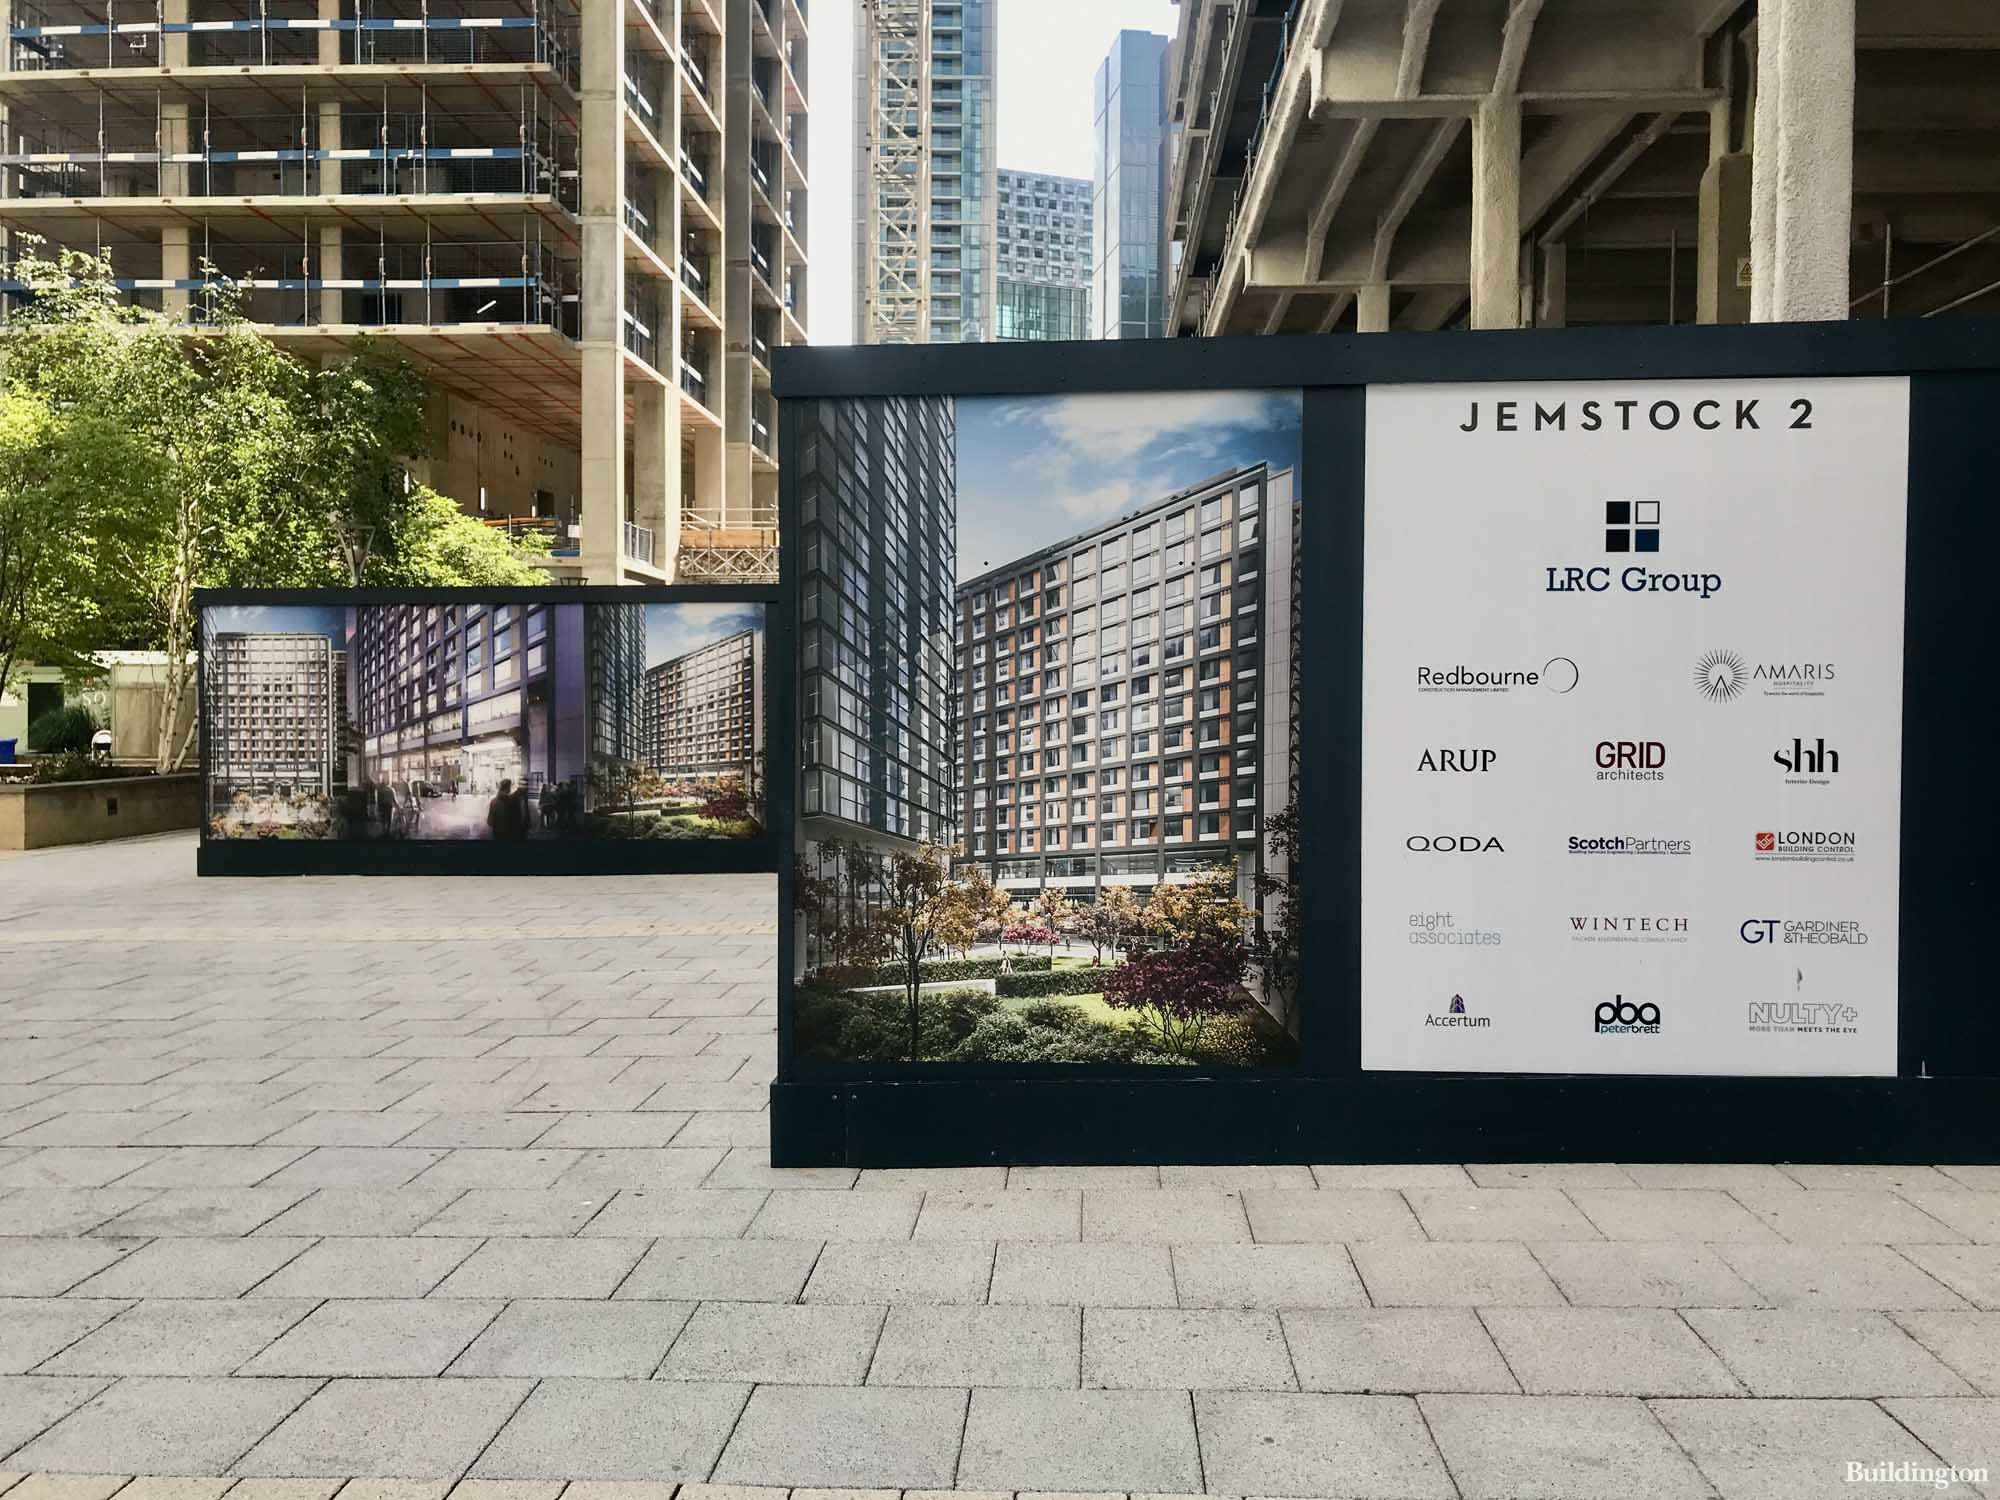 Jemstock 2 by LCR Group development team on the hoarding.